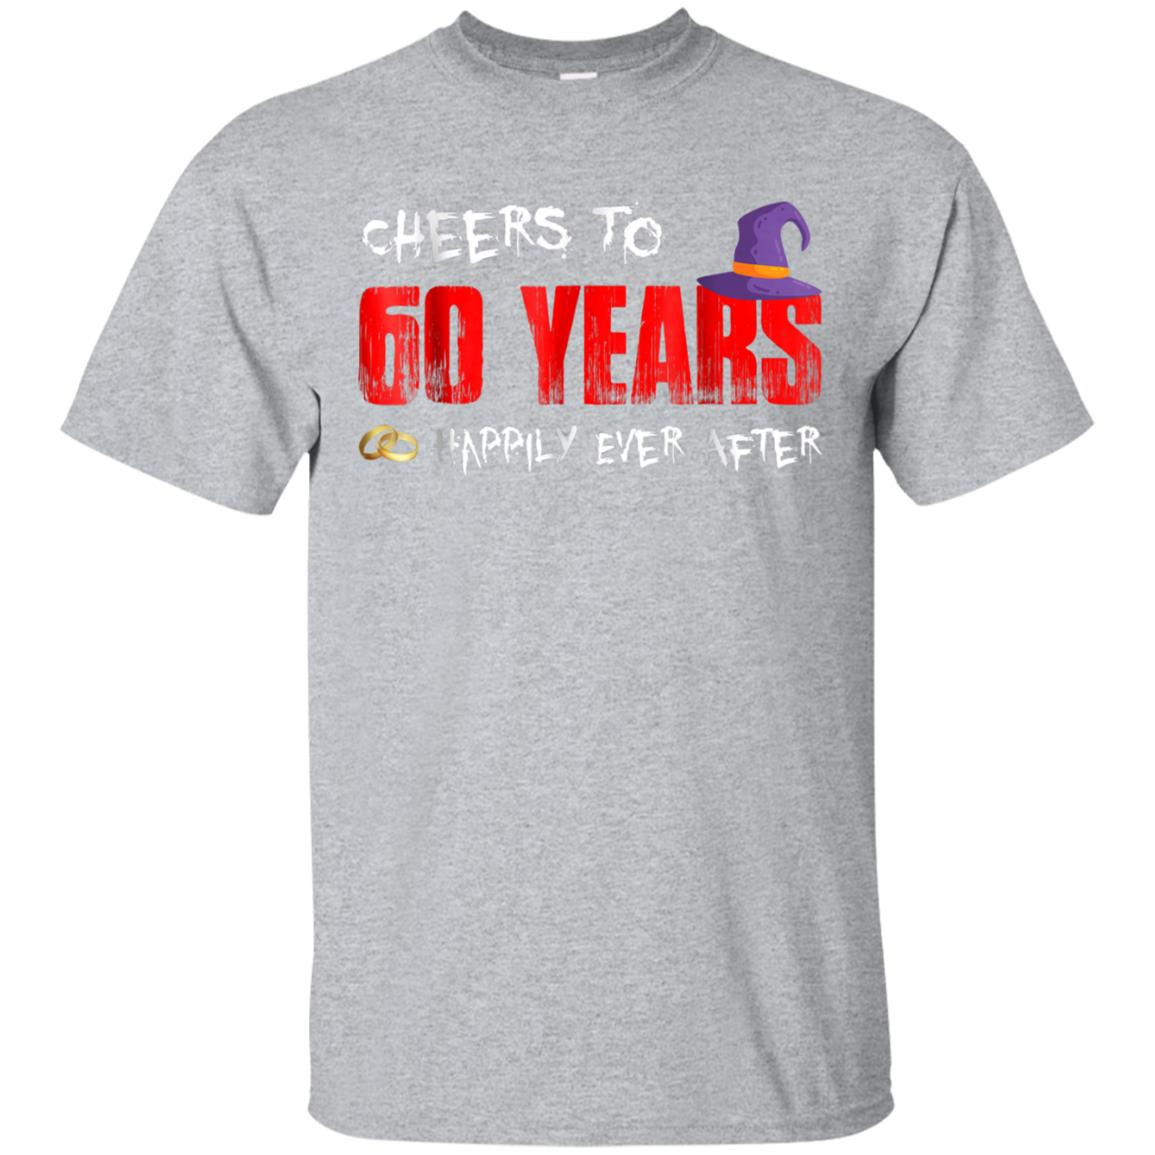 Cheers To 60 Years Happily Ever After Halloween Tee 99promocode